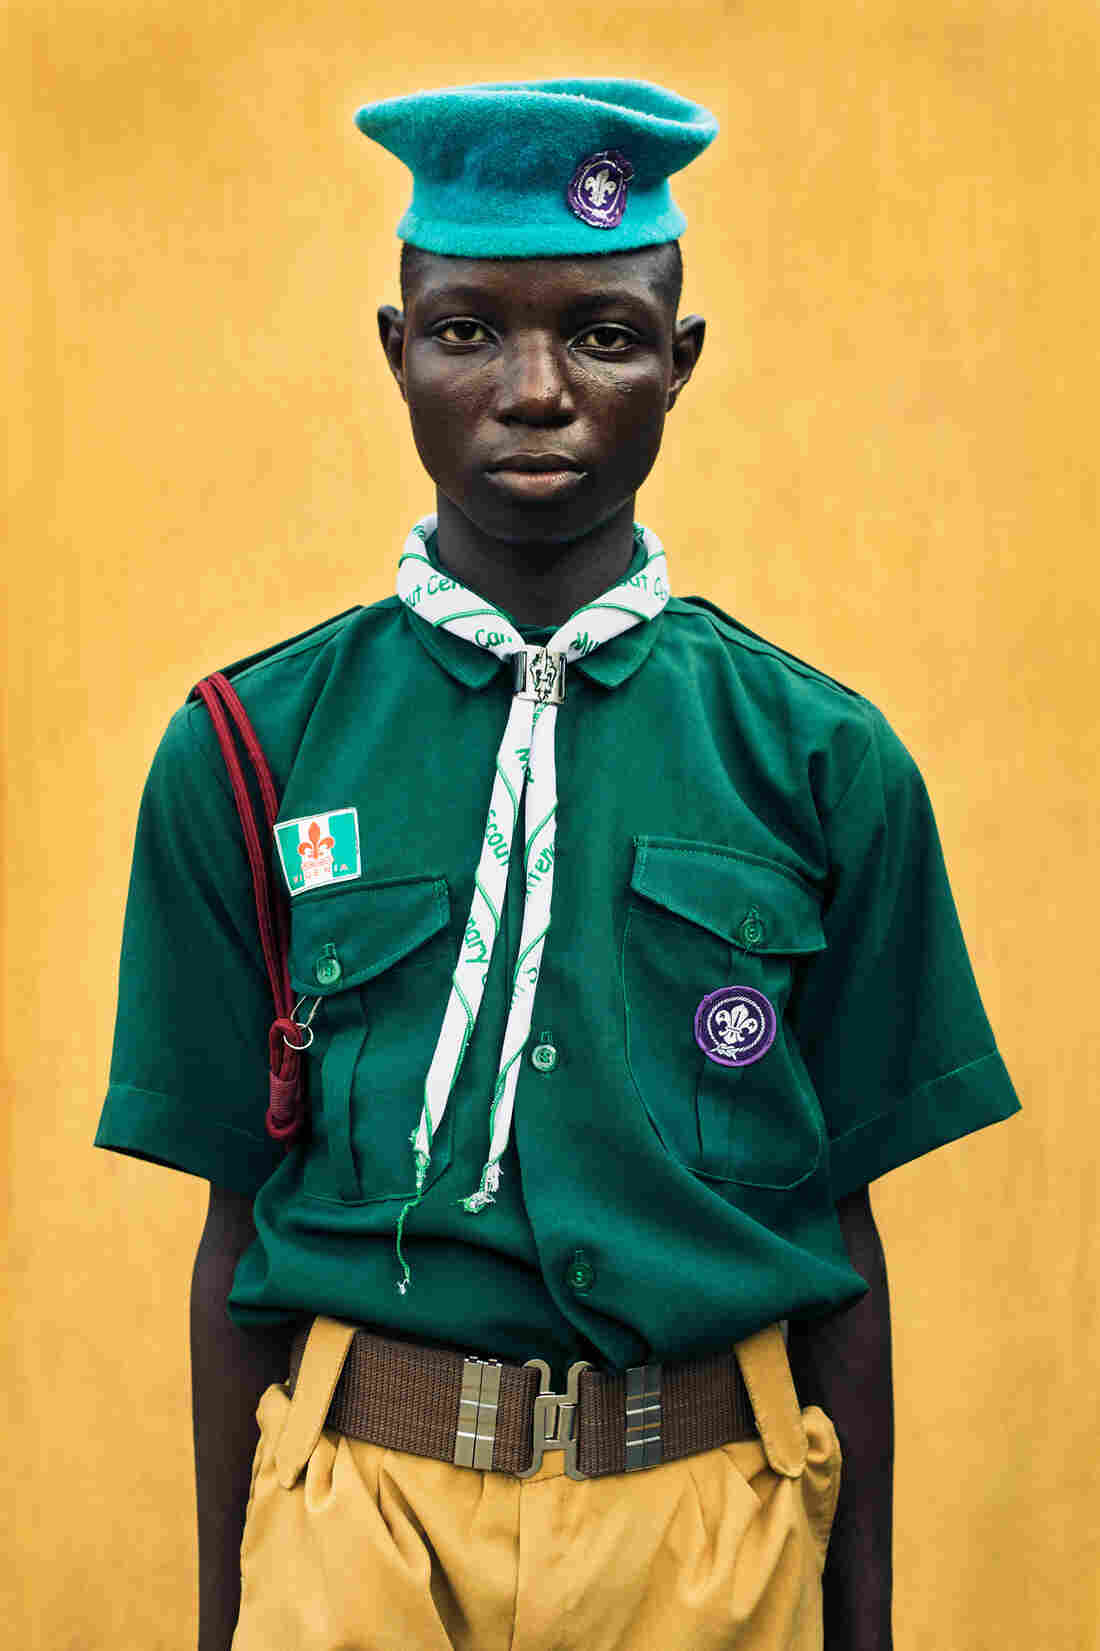 Boy Scout, 2015 © Karl Ohiri and Riikka Kassinen